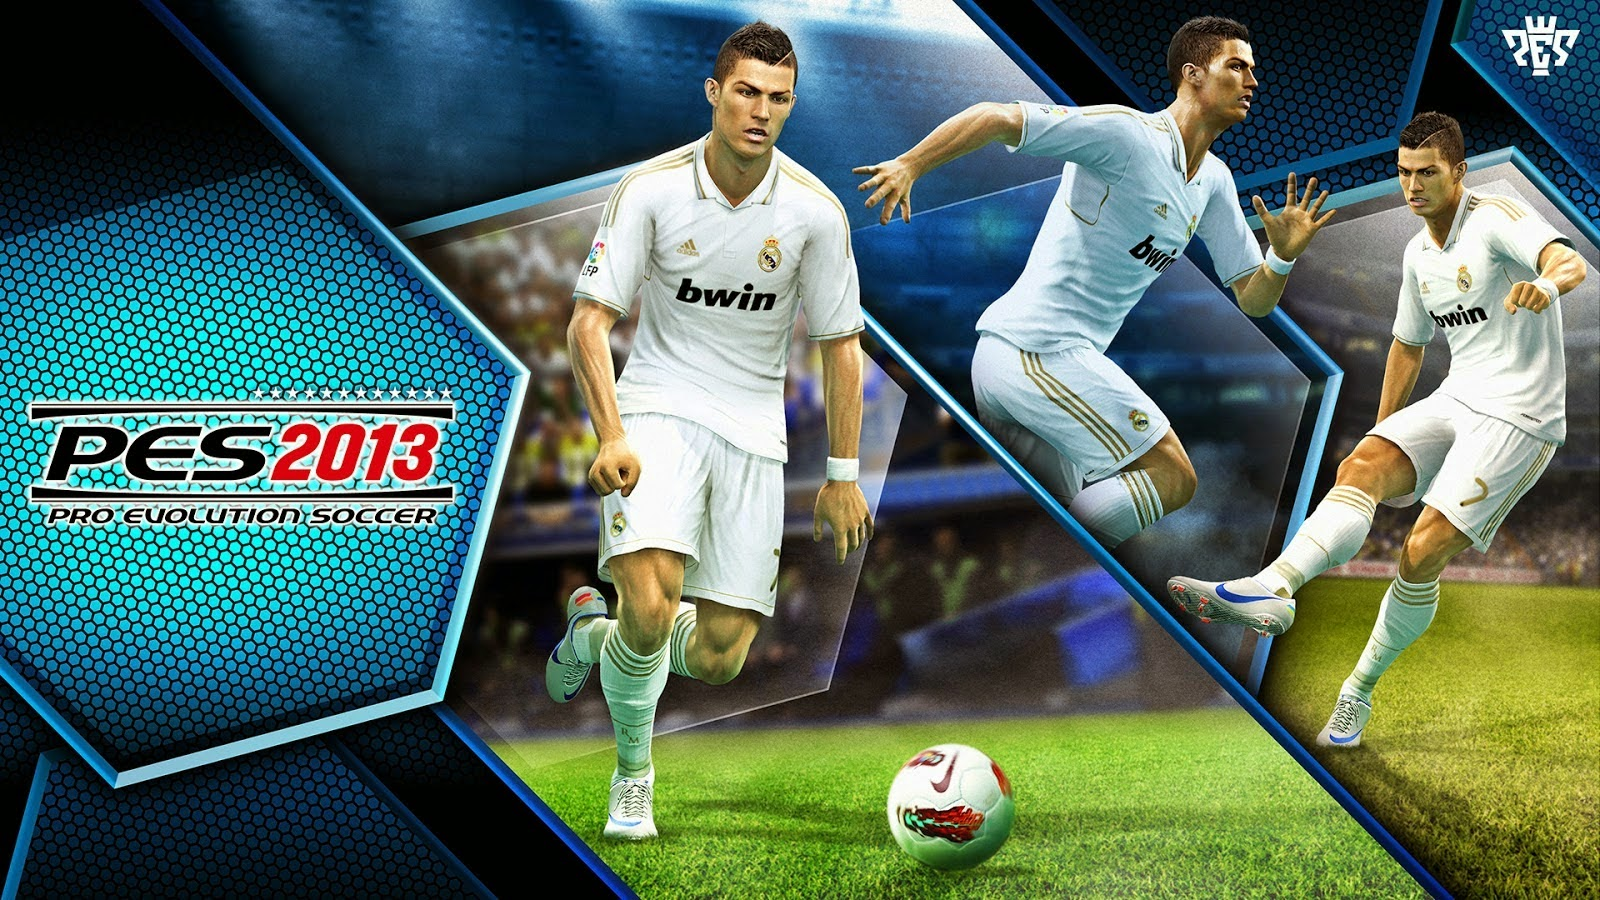 Download Transfer Pemain 2014-2015 PES 2013 + Update Kits